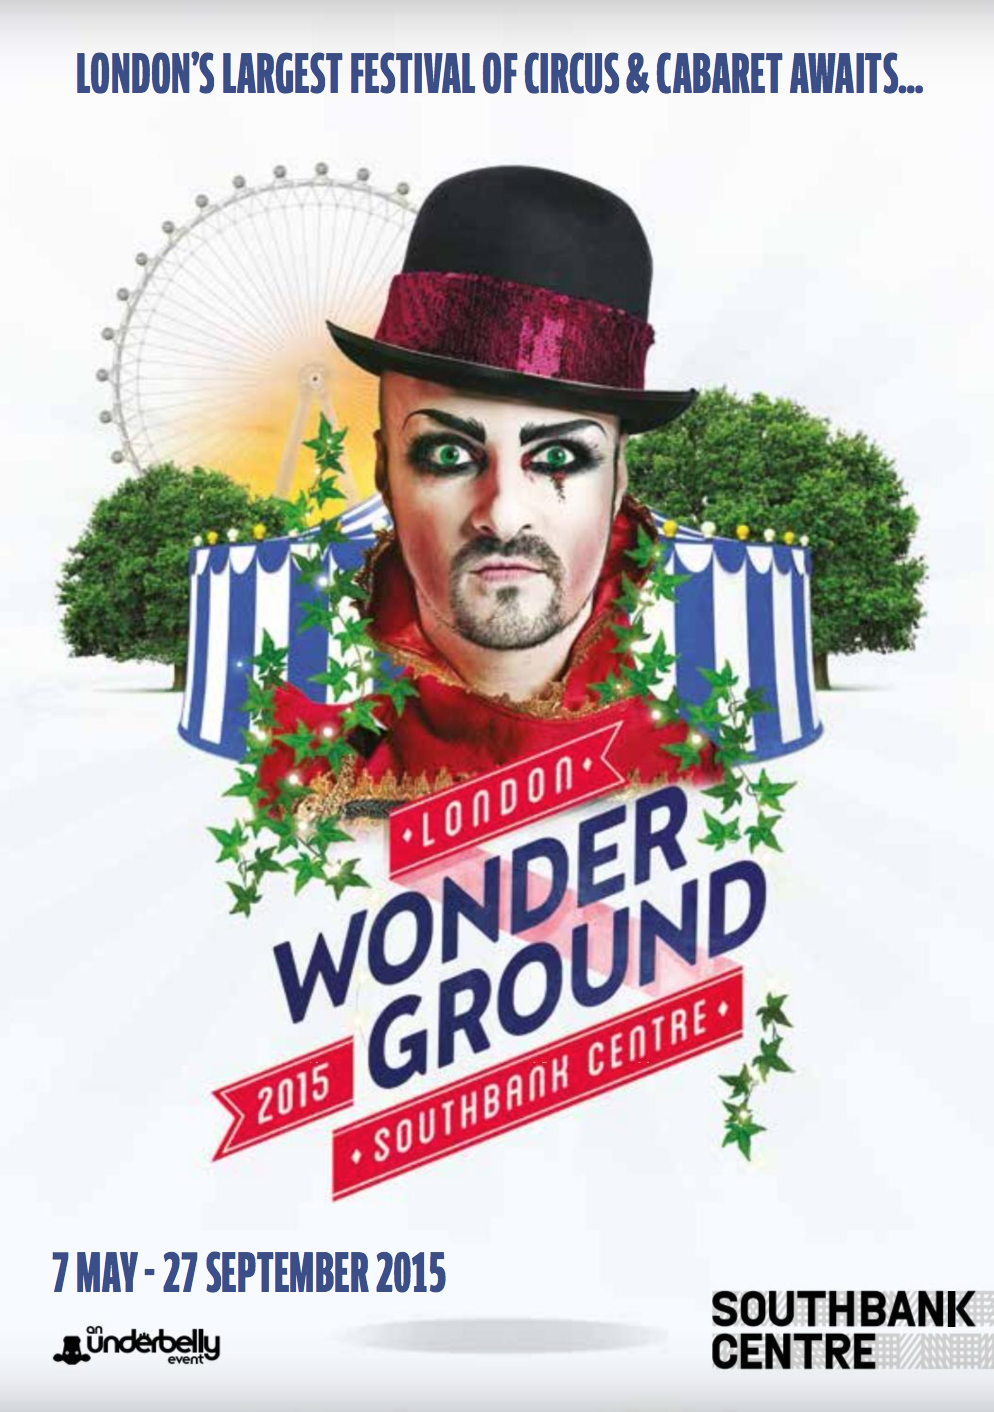 London Wonderground Festiva 2015 brochure (click to read)